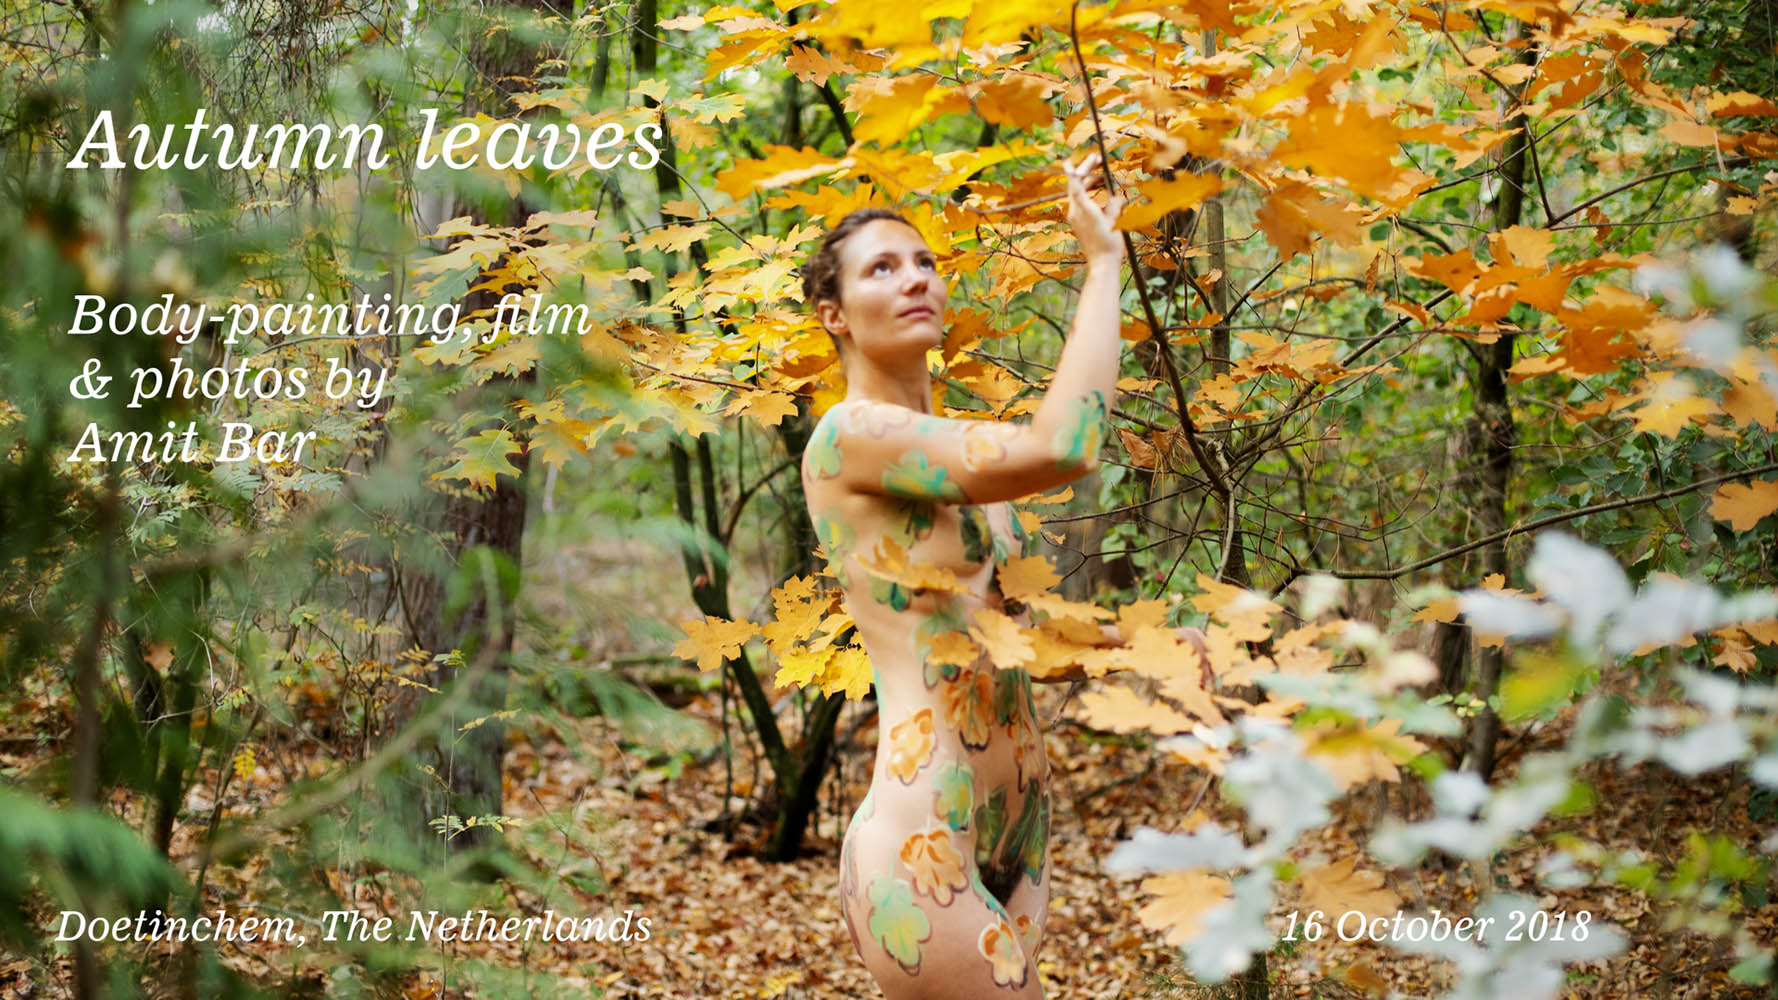 Body painted autumn leaves video title